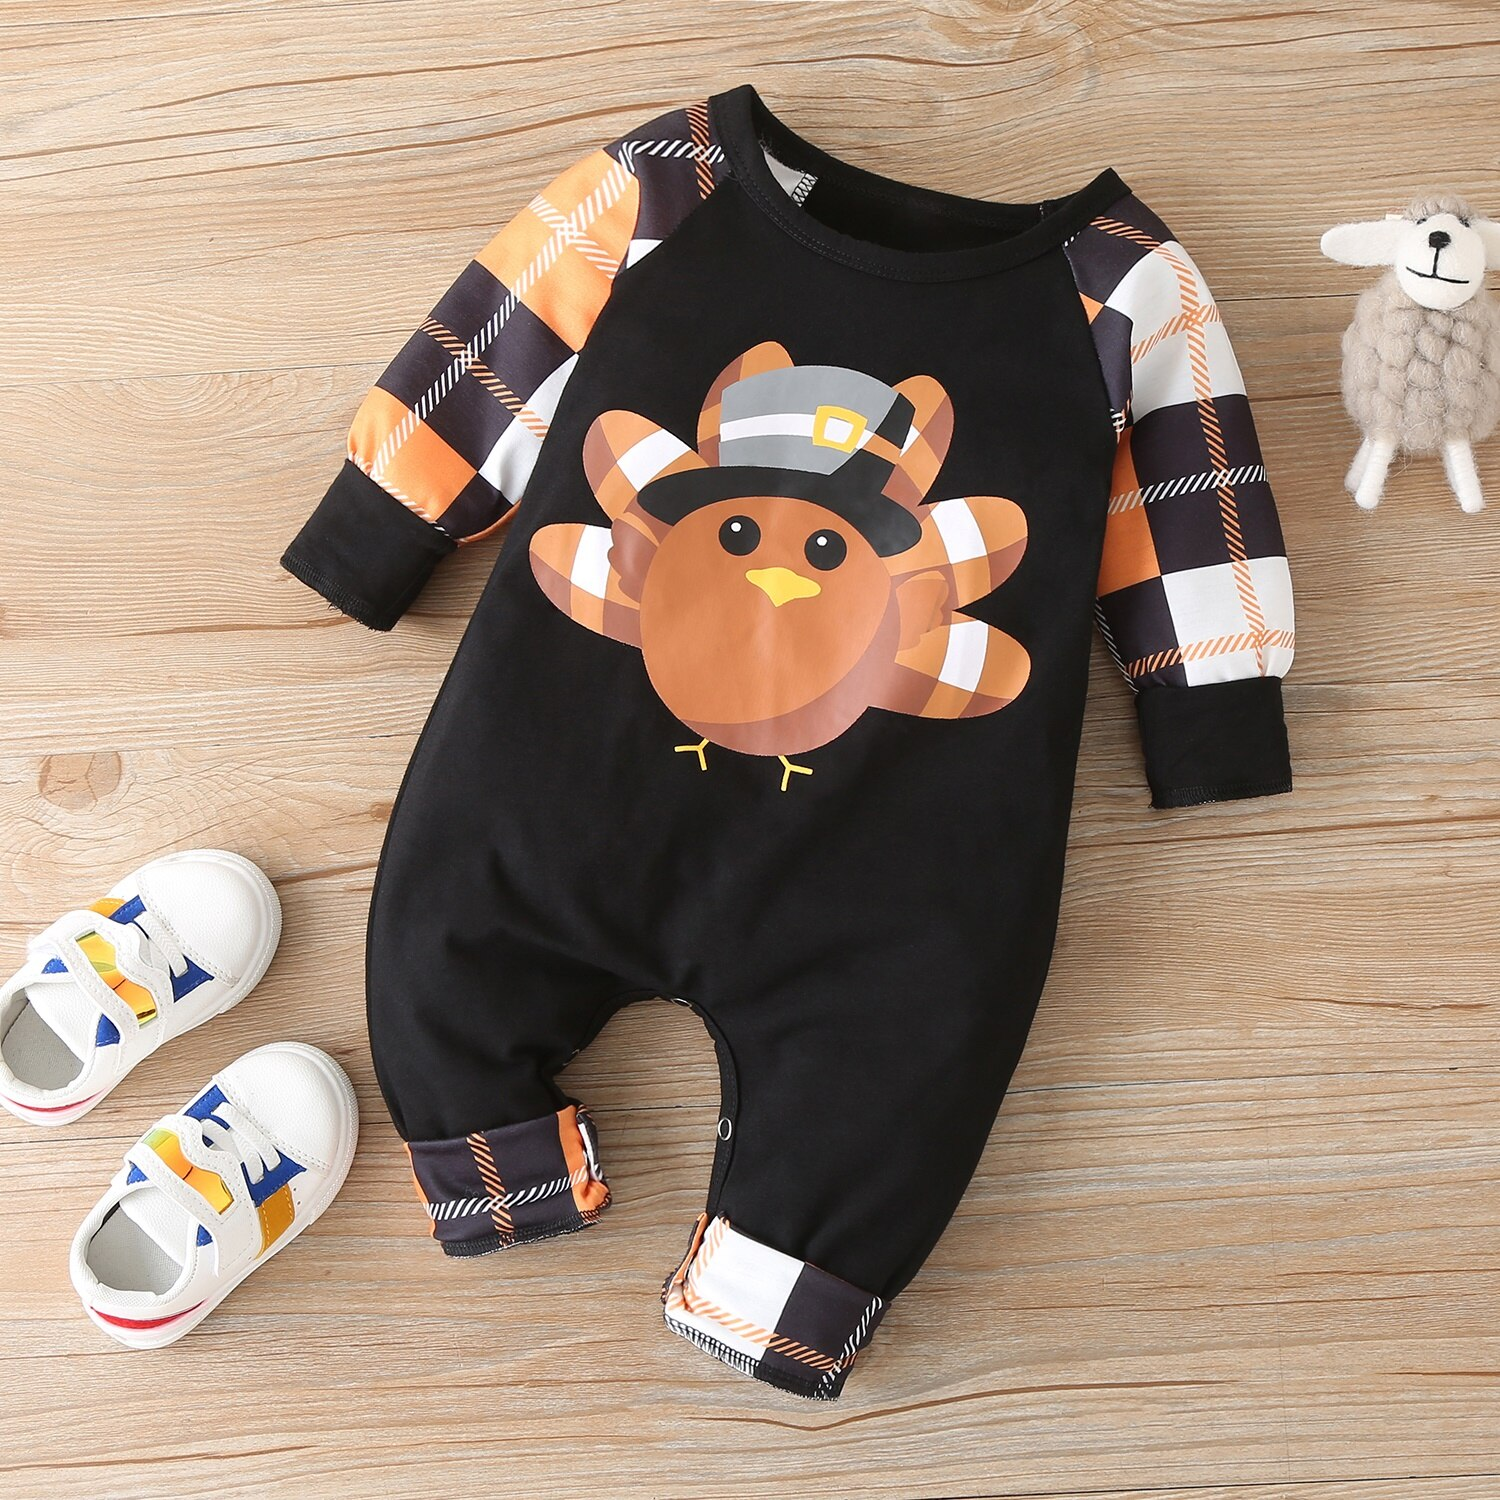 Fashion Thanksgiving Clothes Winter Fall Baby Boy Clothes Cotton Cartoon Turkey Patchwork Plaid Long Sleeve Baby Romper  0-18M new design fall winter thanksgiving kids outfit wholesale children baby girls cute cheap kid clothes